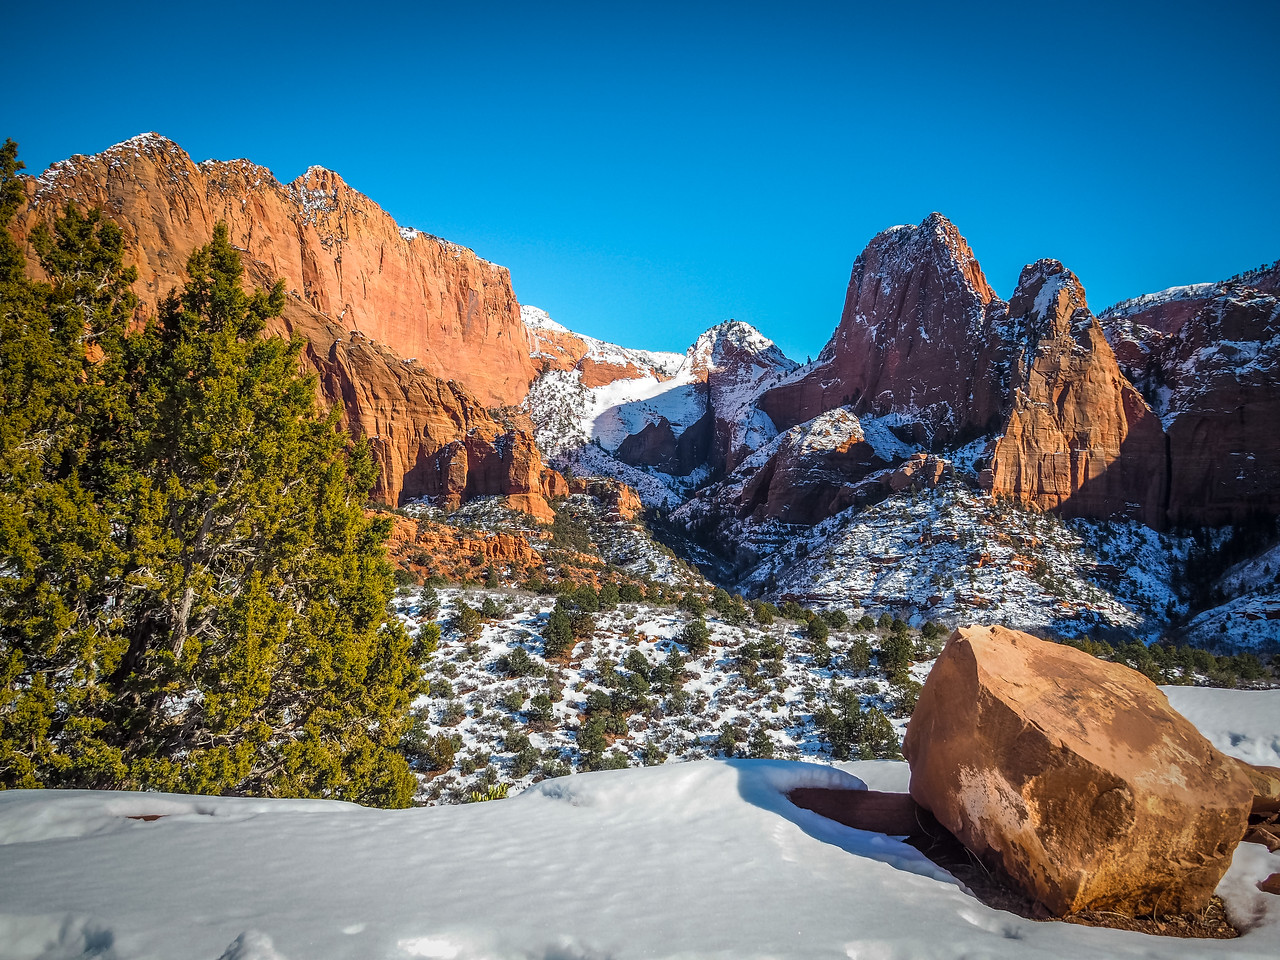 Snow in Kolob Canyons